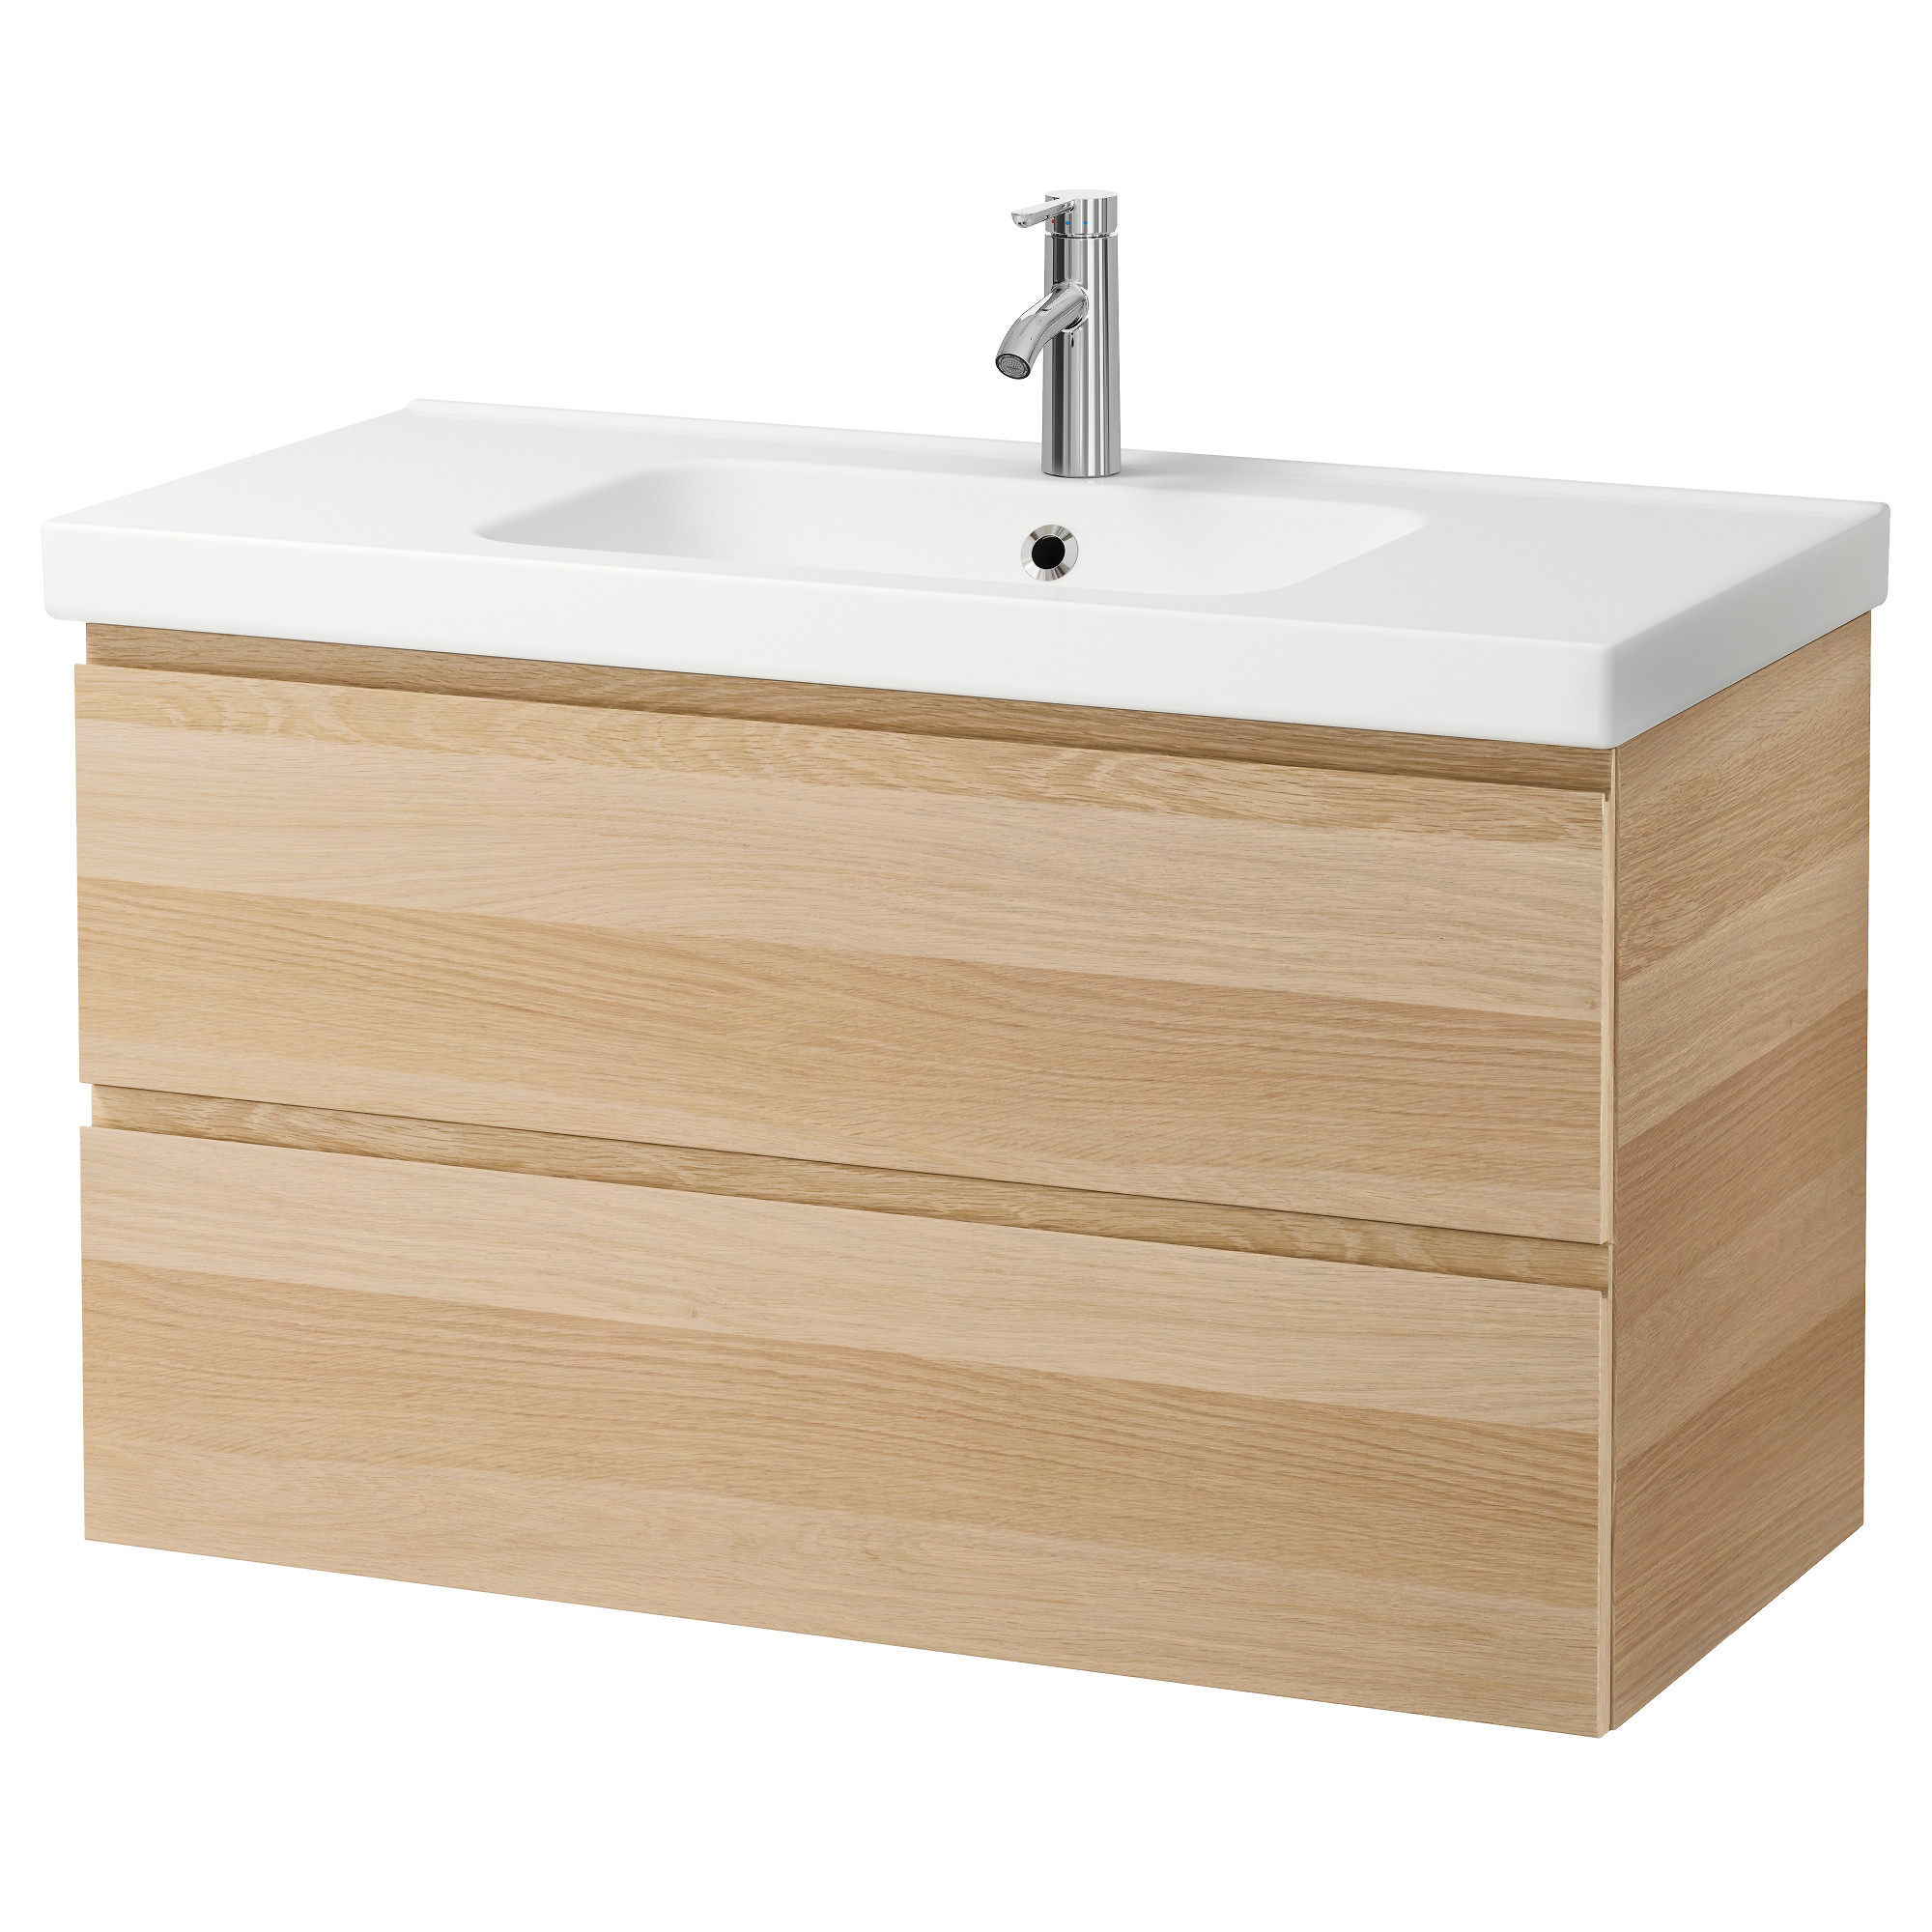 Design Sink Cabinets godmorgon odensvik sink cabinet with 2 drawers white stained oak effect ikea